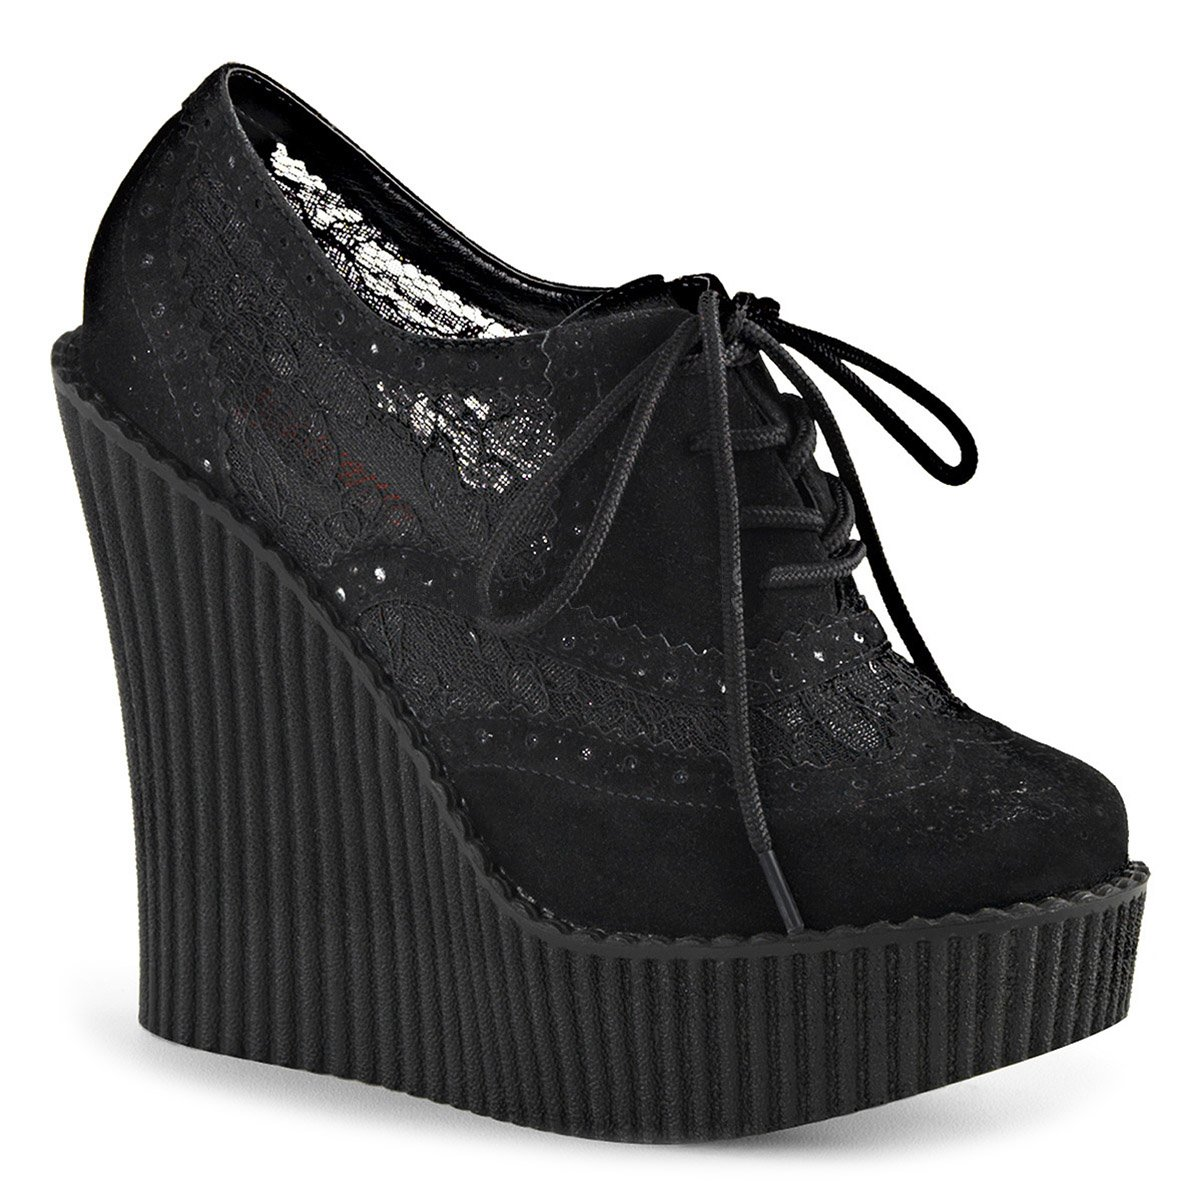 Womens All Black Wedges Lace Up Shoes Platform Creepers Shoes Vegan Suede 5/¼ in